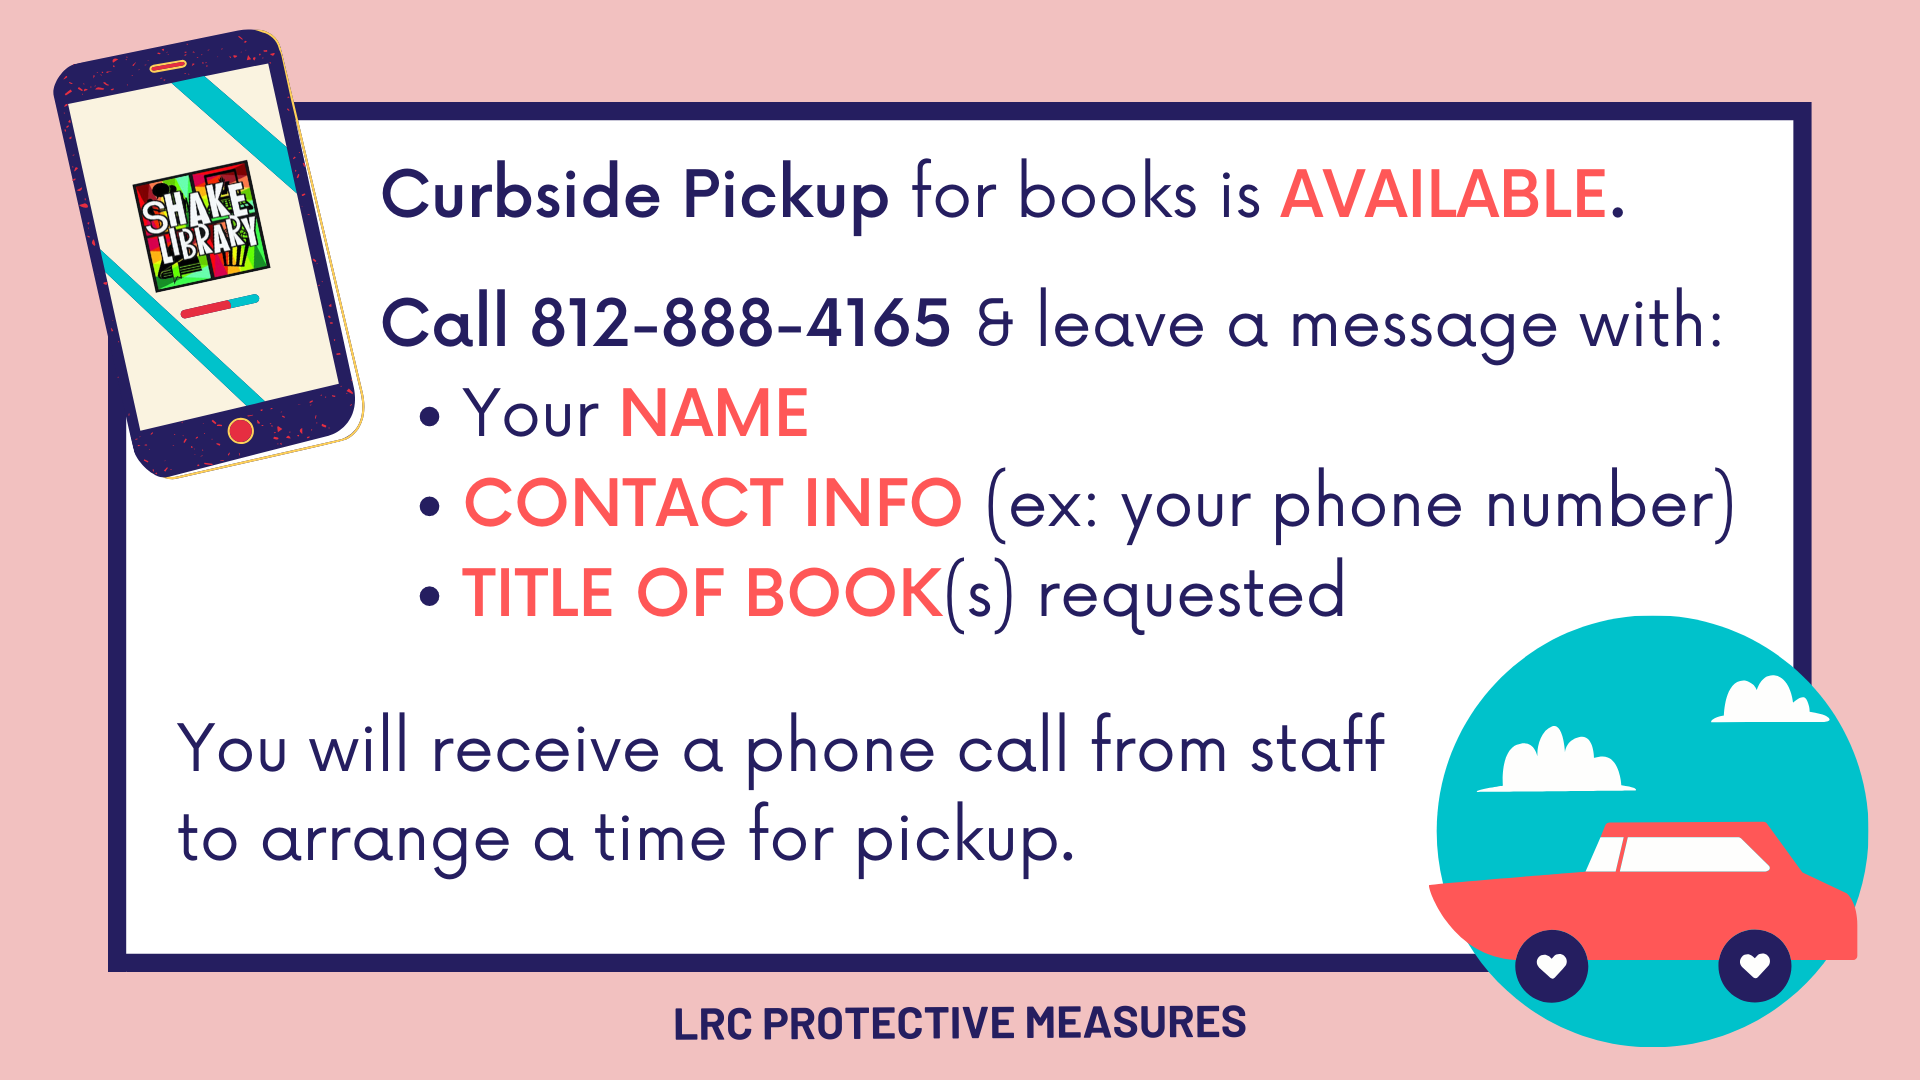 Curbside Pickup Is Available